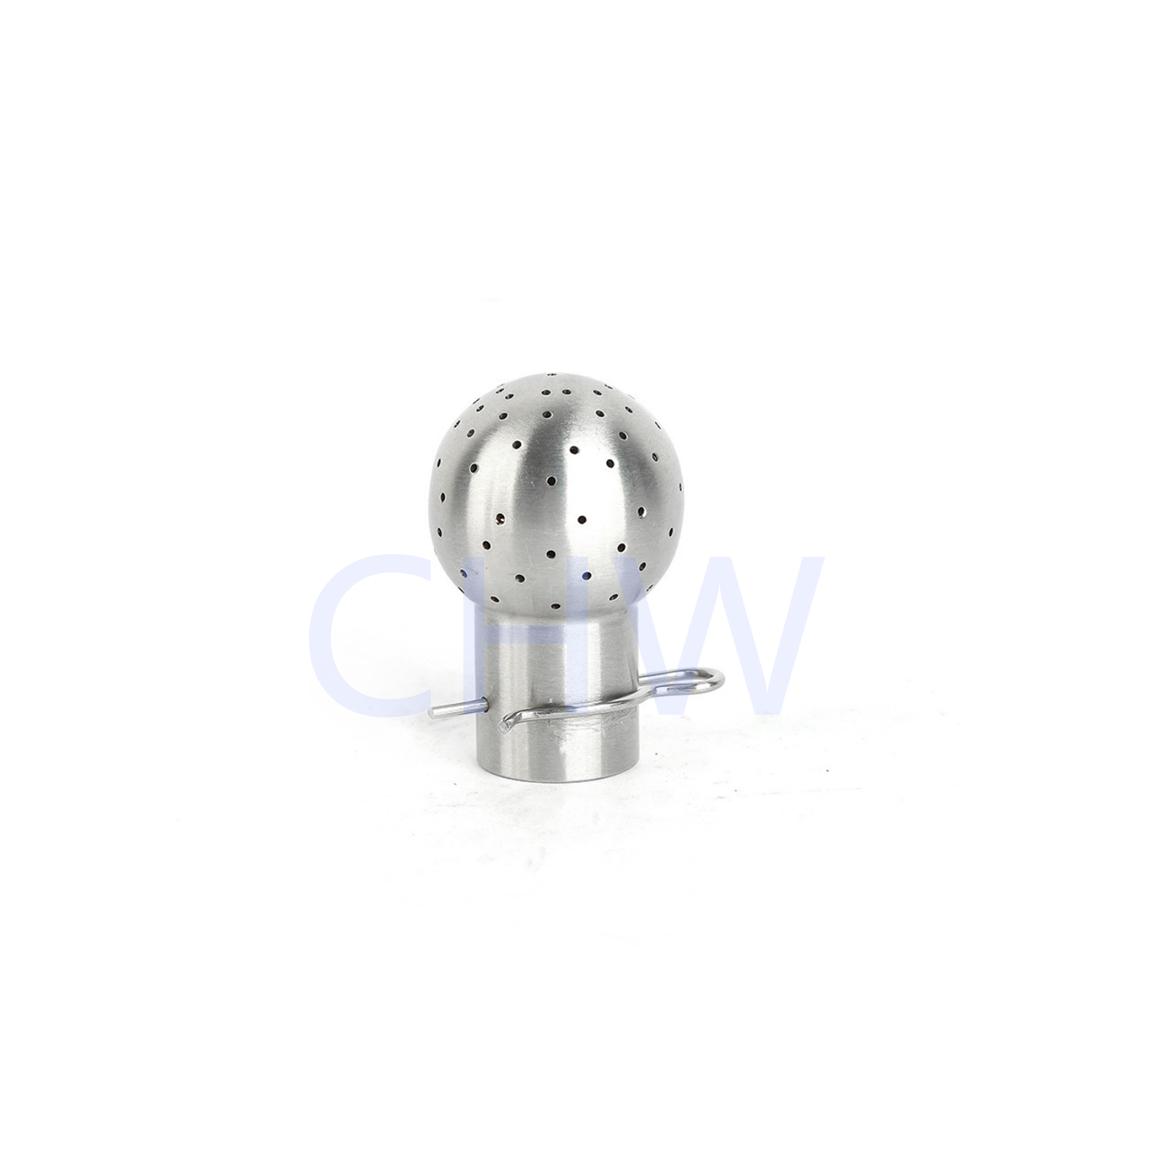 top quality Sanitary stainless steel Welded Rotary Cleaning Ball ss304 ss316L DIN SMS ISO 3A BPE IDF AS BS